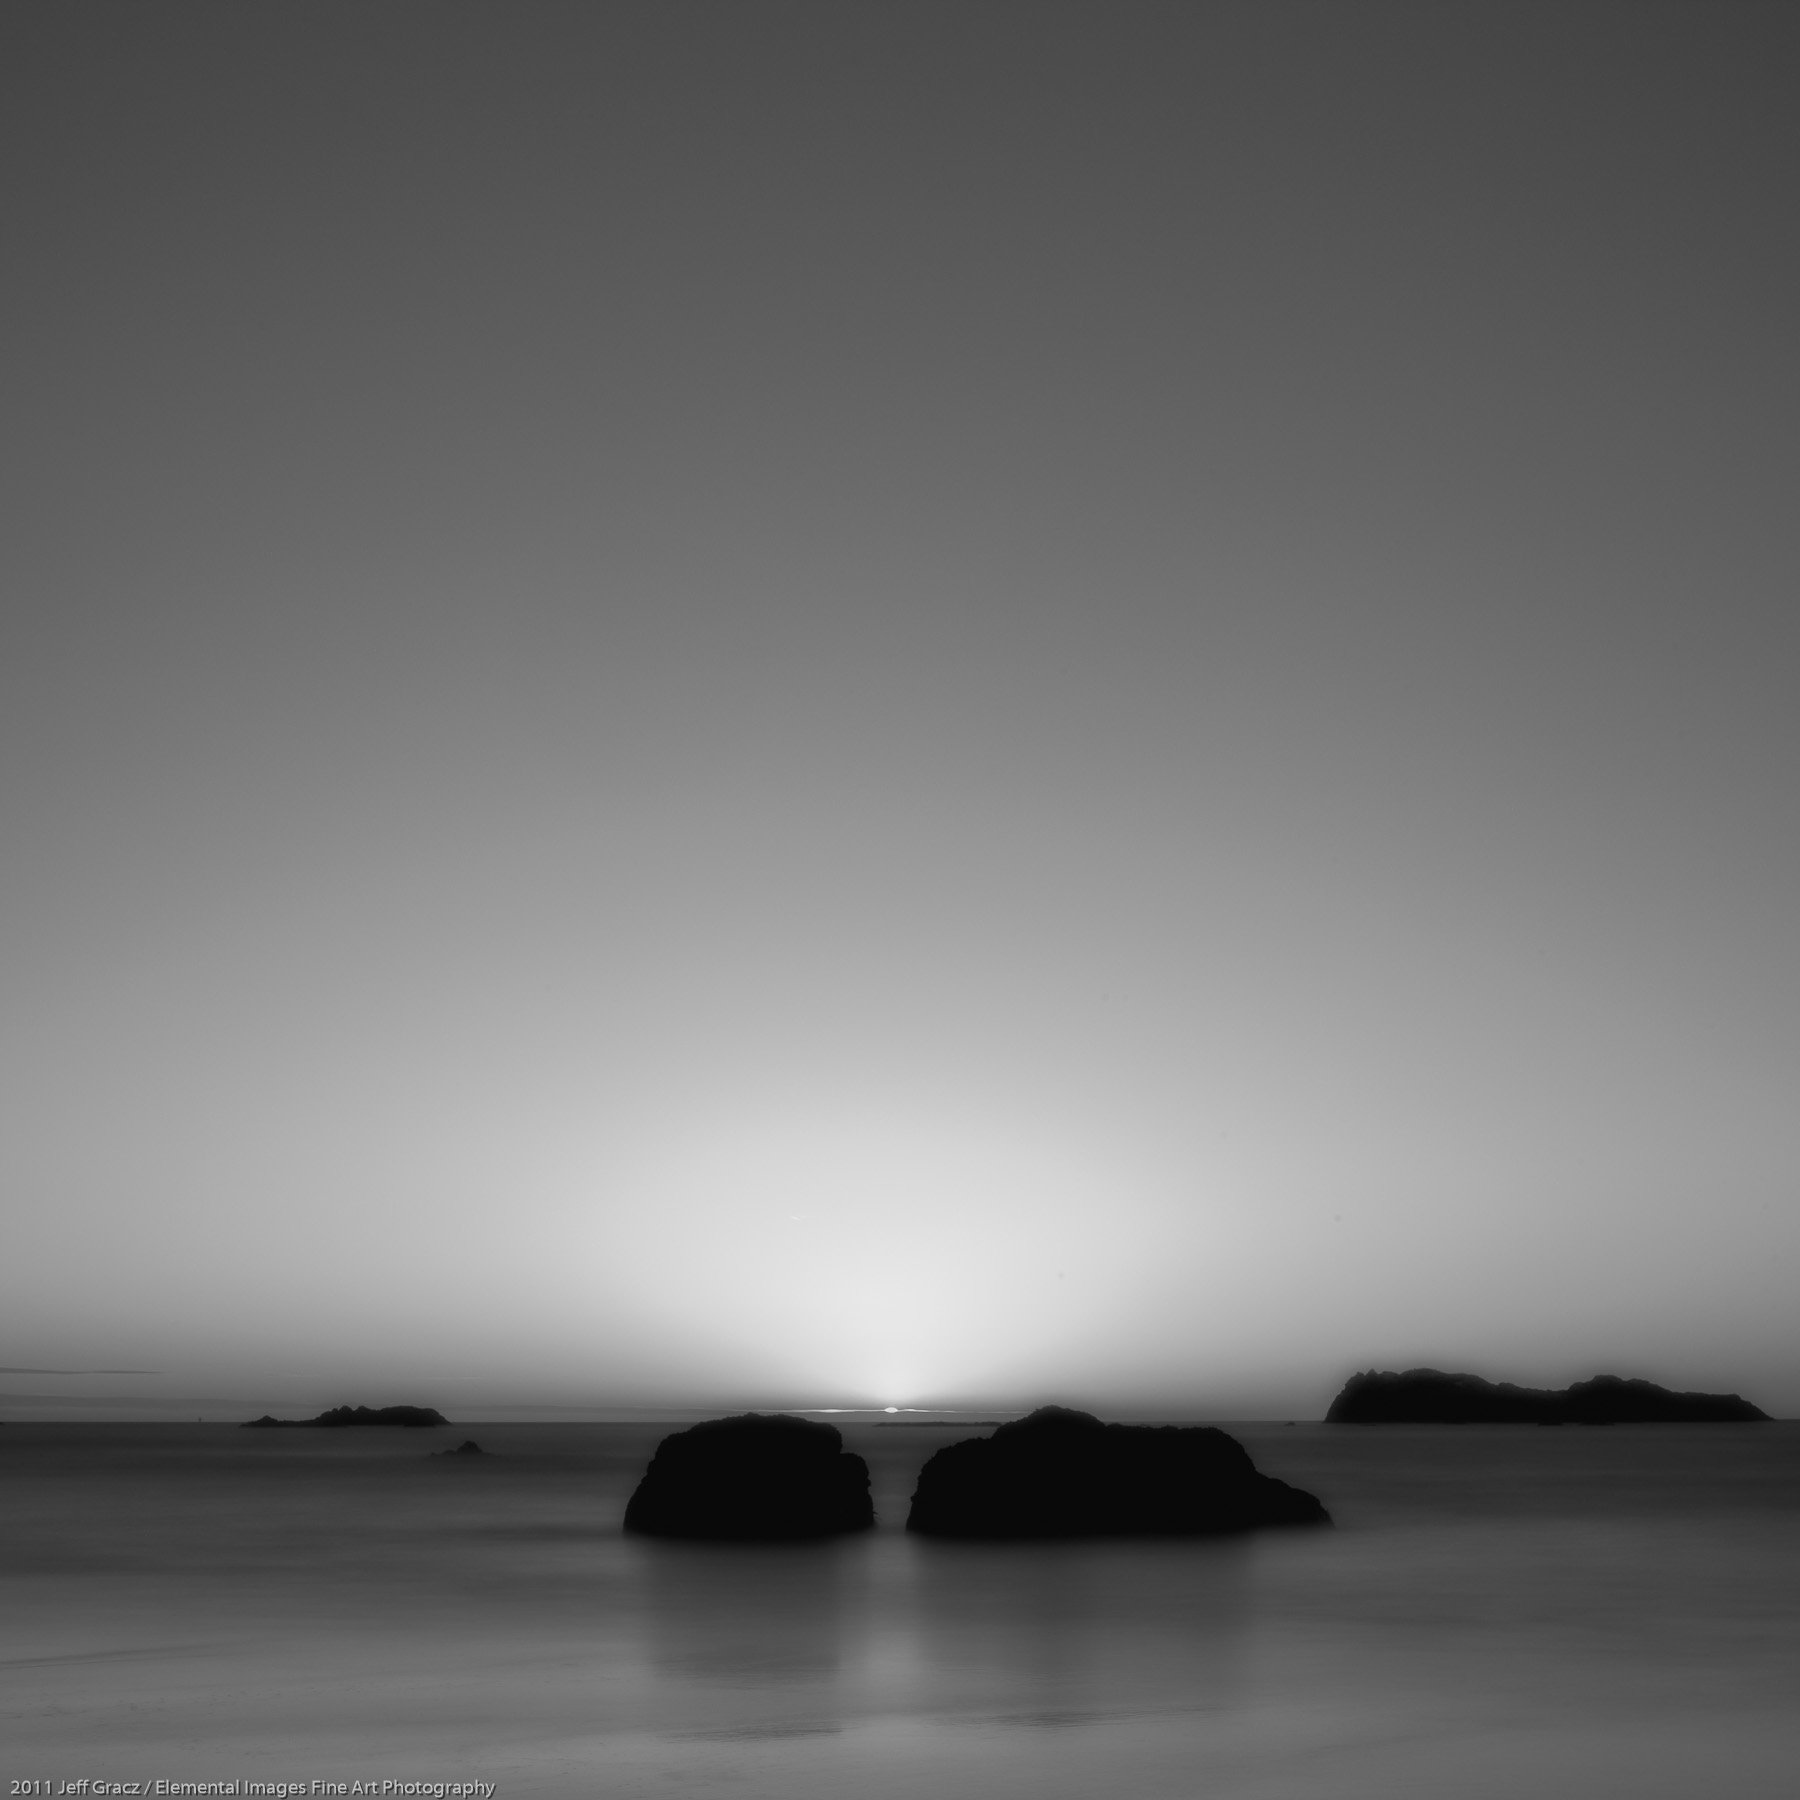 Zen Rocks V | Trinidad | CA | USA - © 2011 Jeff Gracz / Elemental Images Fine Art Photography - All Rights Reserved Worldwide